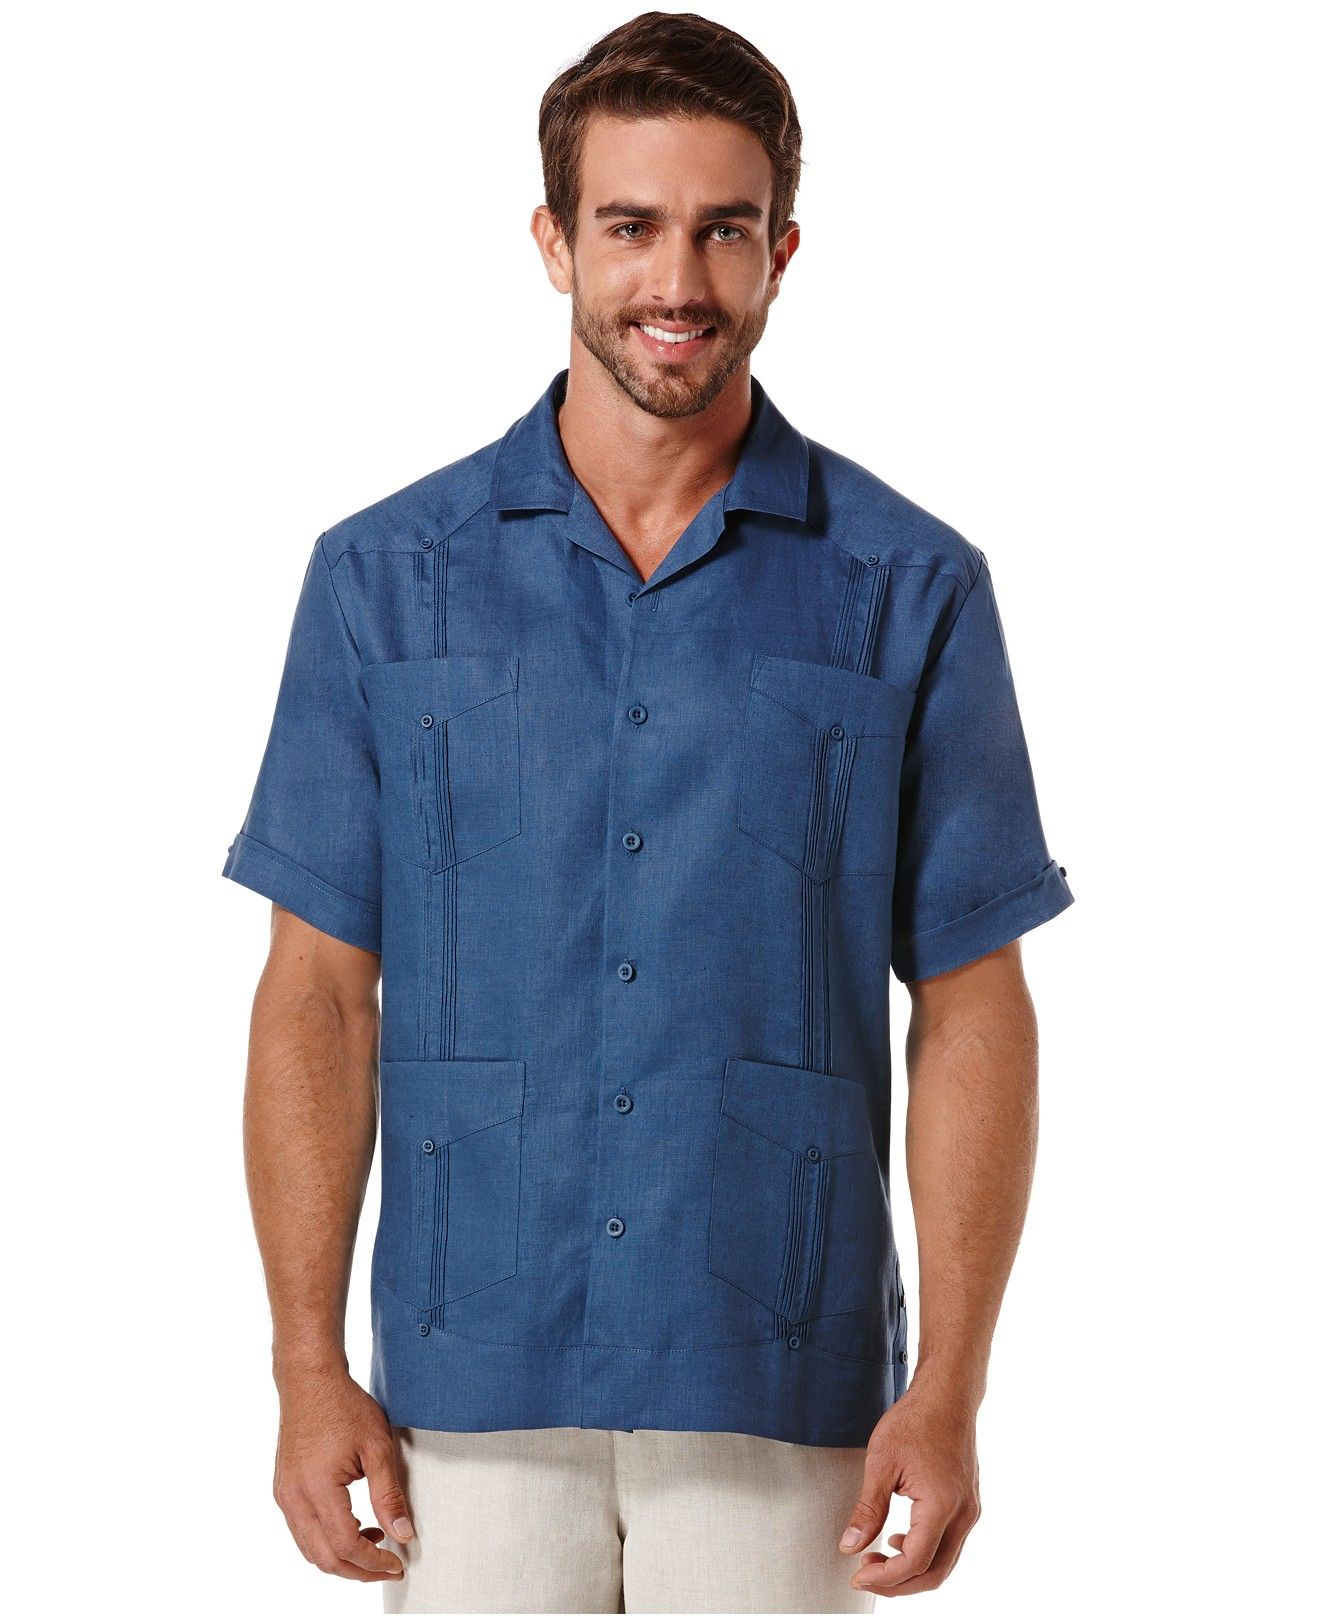 892262ec37 Cubavera Short-Sleeve 4-Pocket Guayabera Shirt that we like.